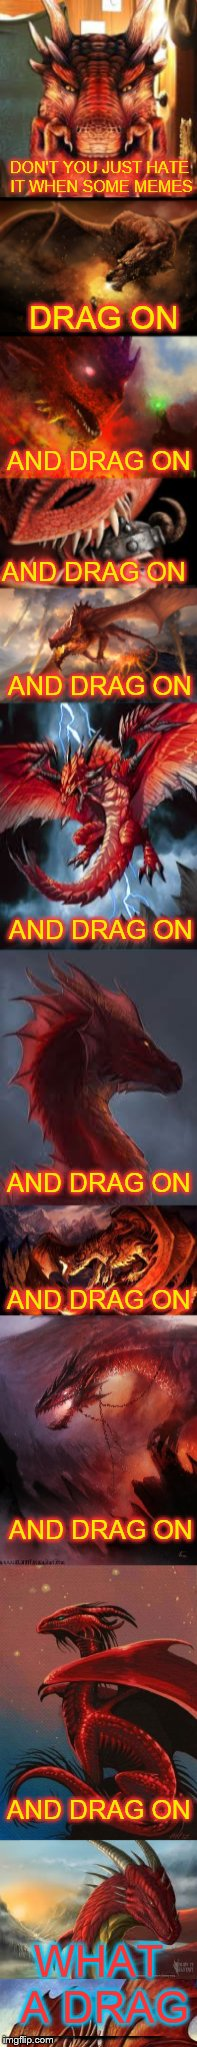 Dragons on parade | DON'T YOU JUST HATE IT WHEN SOME MEMES DRAG ON AND DRAG ON AND DRAG ON AND DRAG ON AND DRAG ON AND DRAG ON AND DRAG ON AND DRAG ON AND DRAG  | image tagged in red dragon,long memes,smile its funny | made w/ Imgflip meme maker